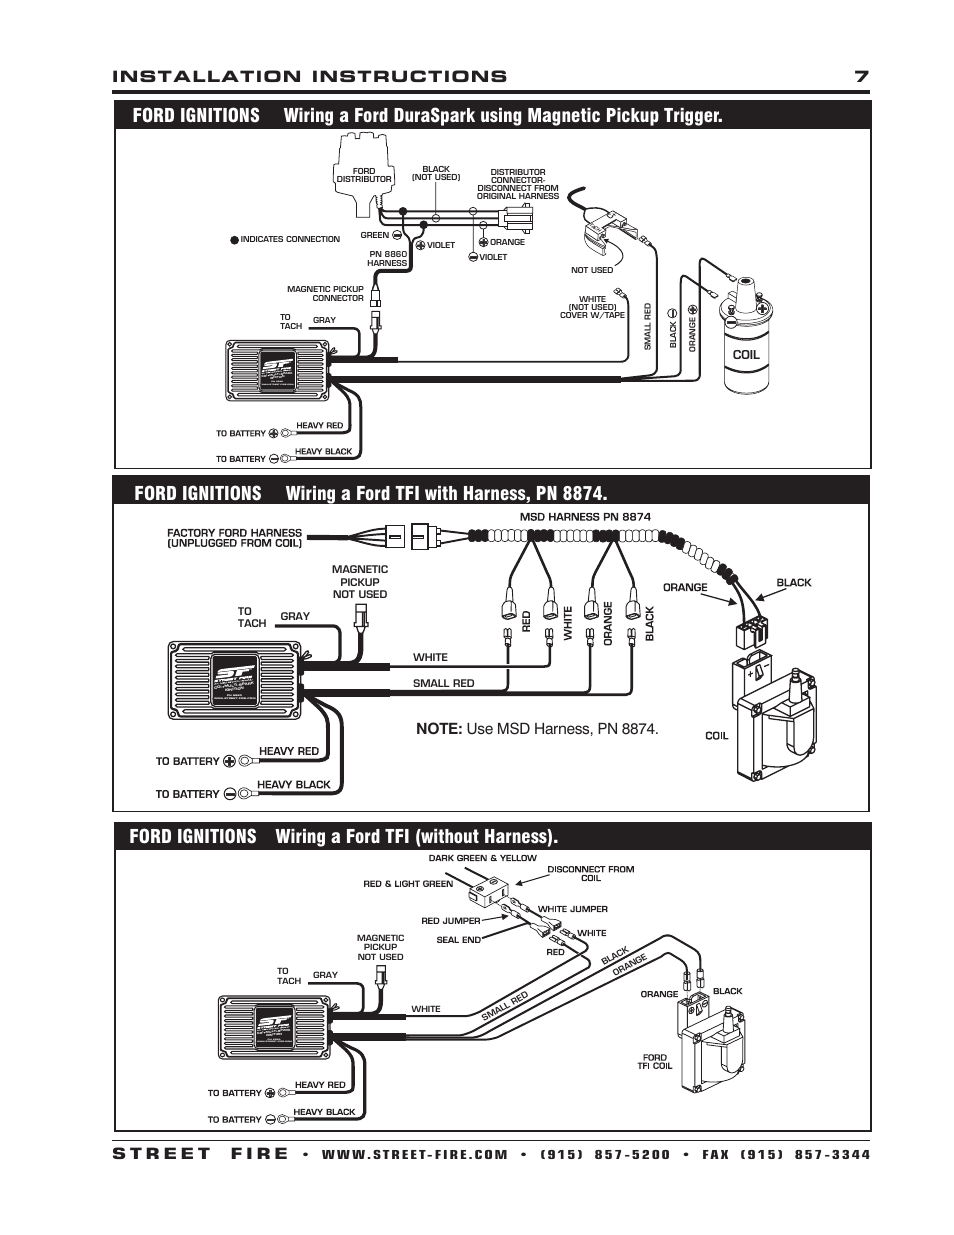 msd street fire wiring diagram ford ignitions wiring a ford tfi (without harness) | msd ... msd street fire ignition wiring diagram